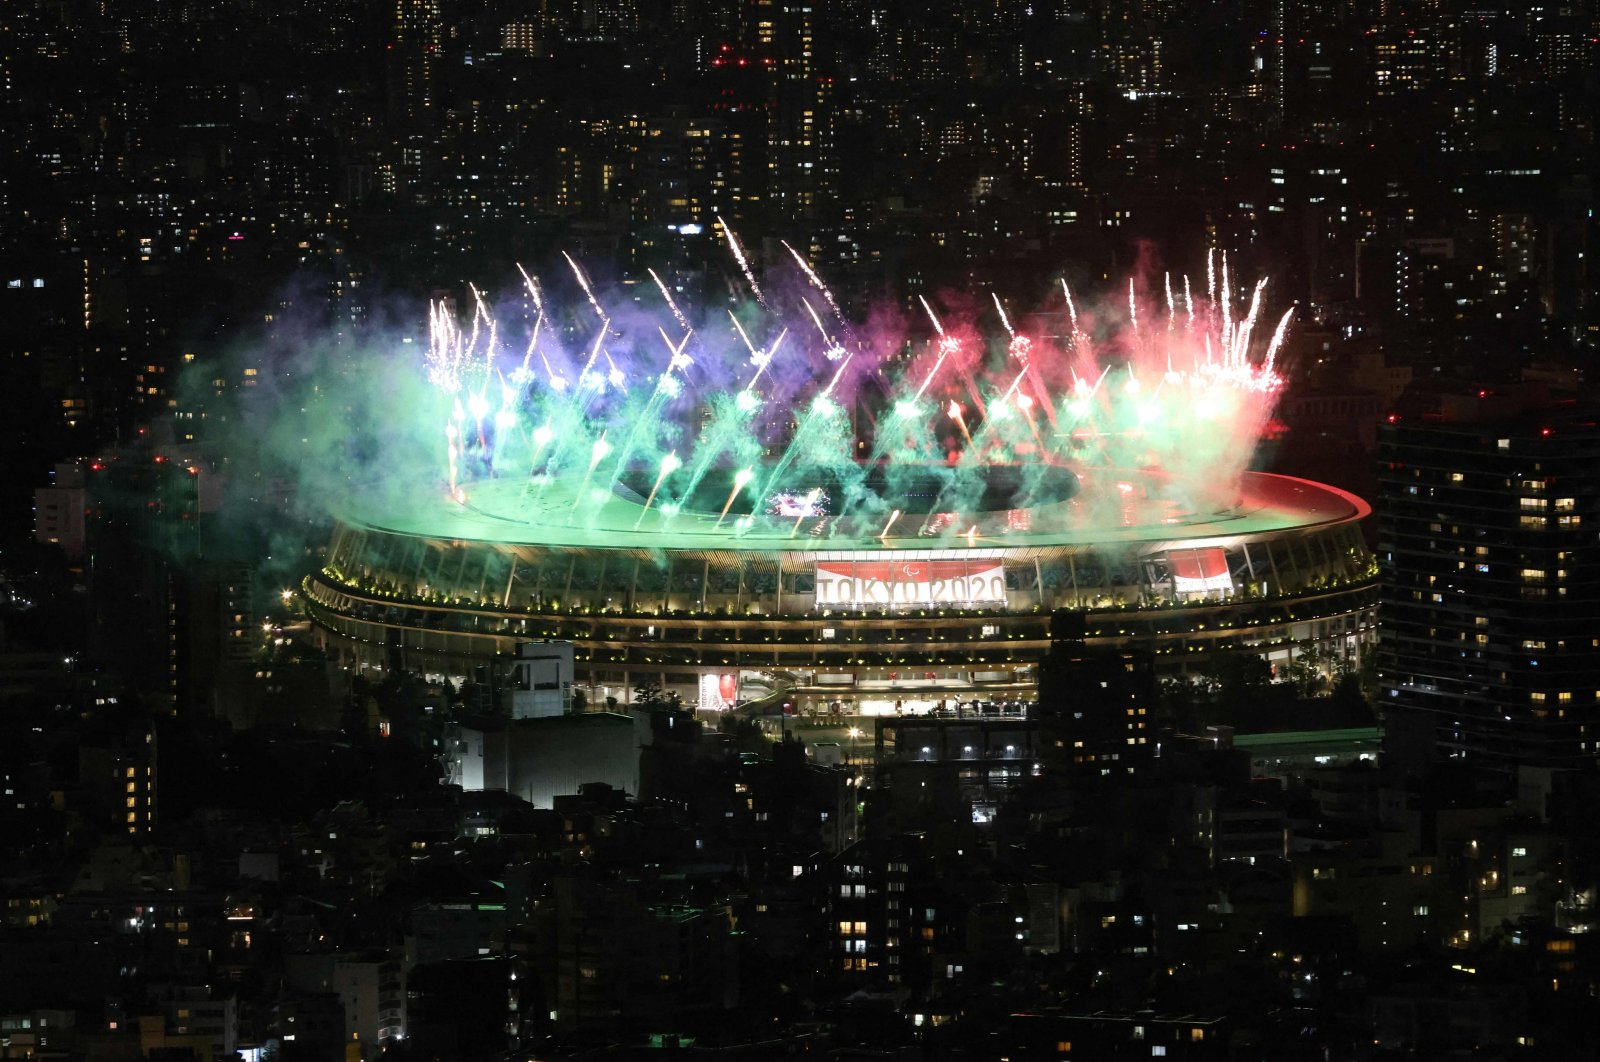 Fireworks light up the sky above the Olympic Stadium during the closing ceremony for the Tokyo 2020 Paralympic Games in Tokyo on September 5, 2021. (Photo by Behrouz MEHRI / AFP)